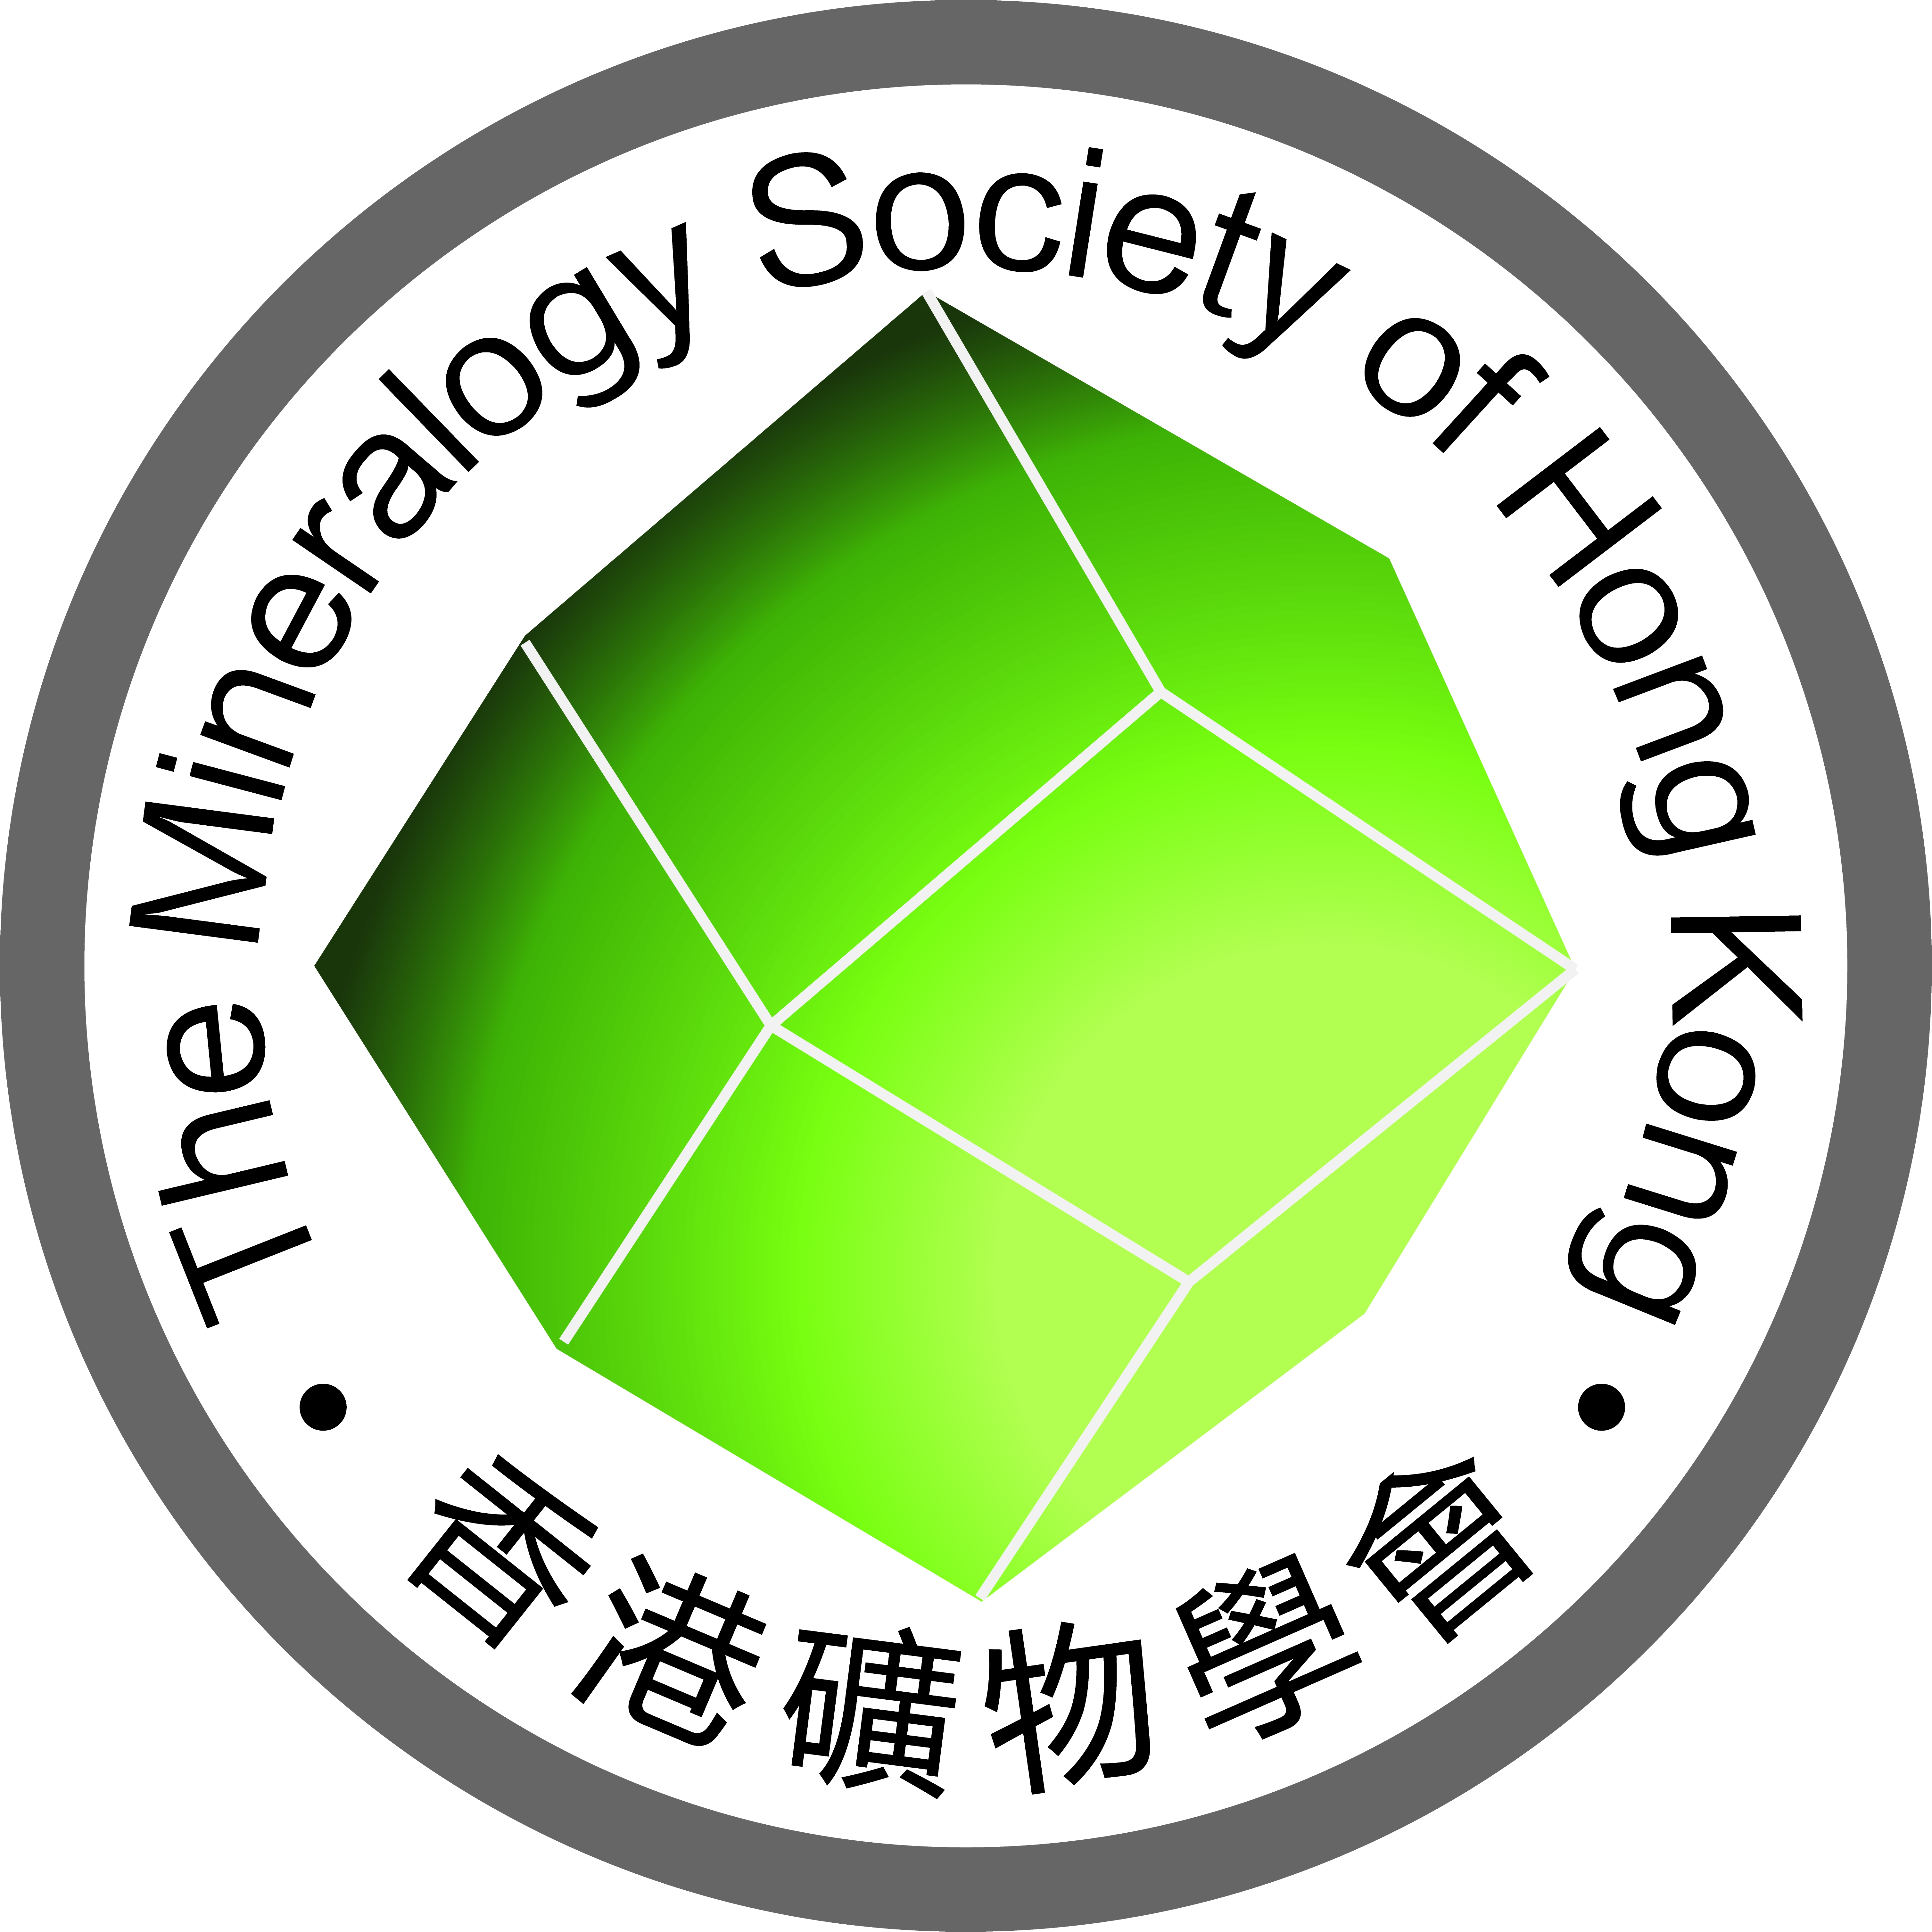 The Mineralogy Society of Hong Kong